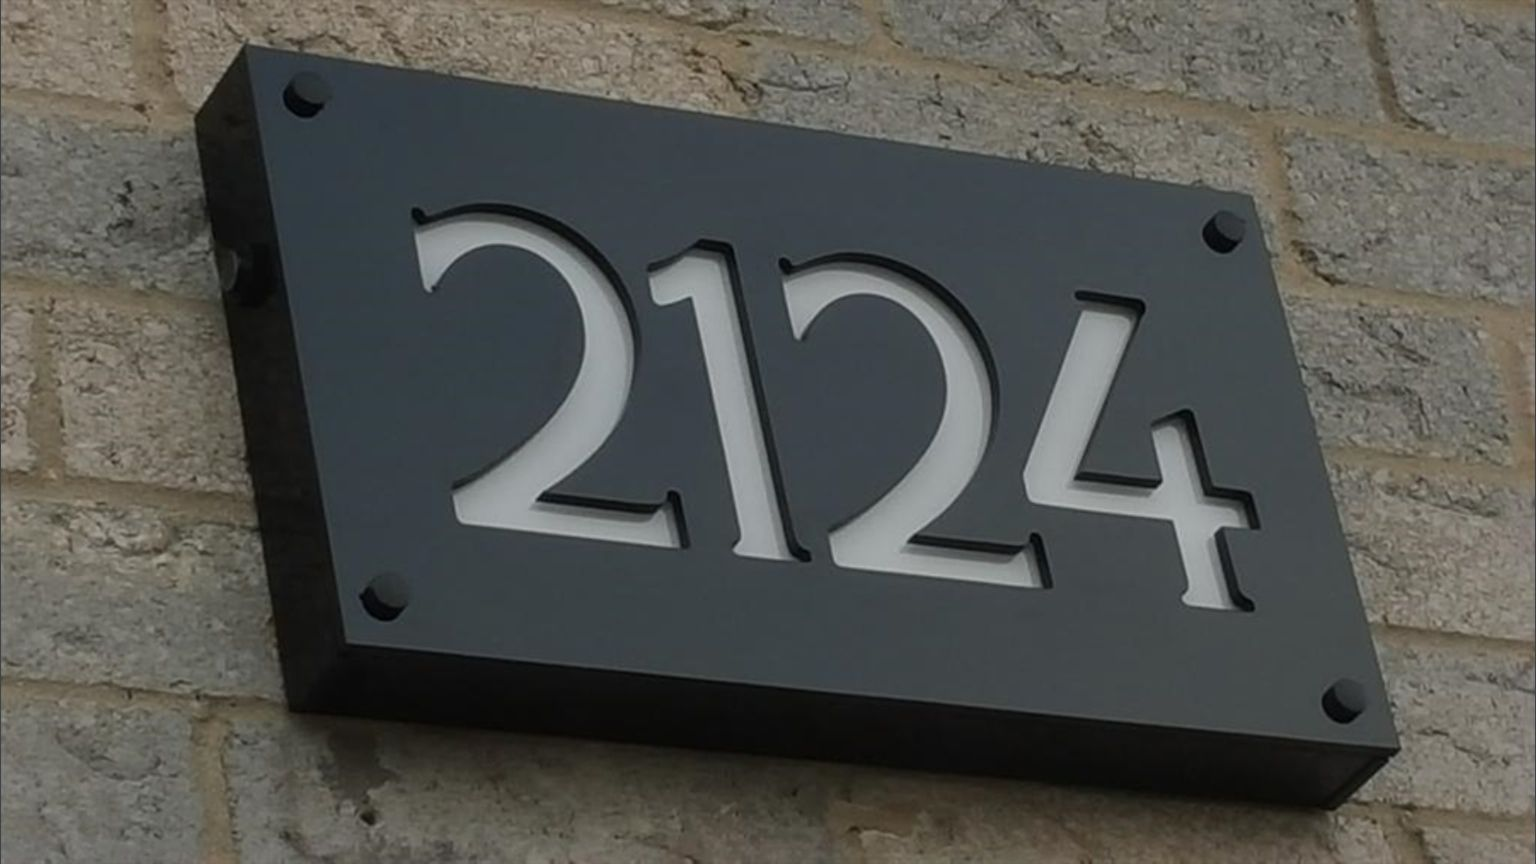 8cc0d07eb91 Designed a custom engraved front lit led low voltage house number address  sign that is weatherproof available in 3 modern finishes.